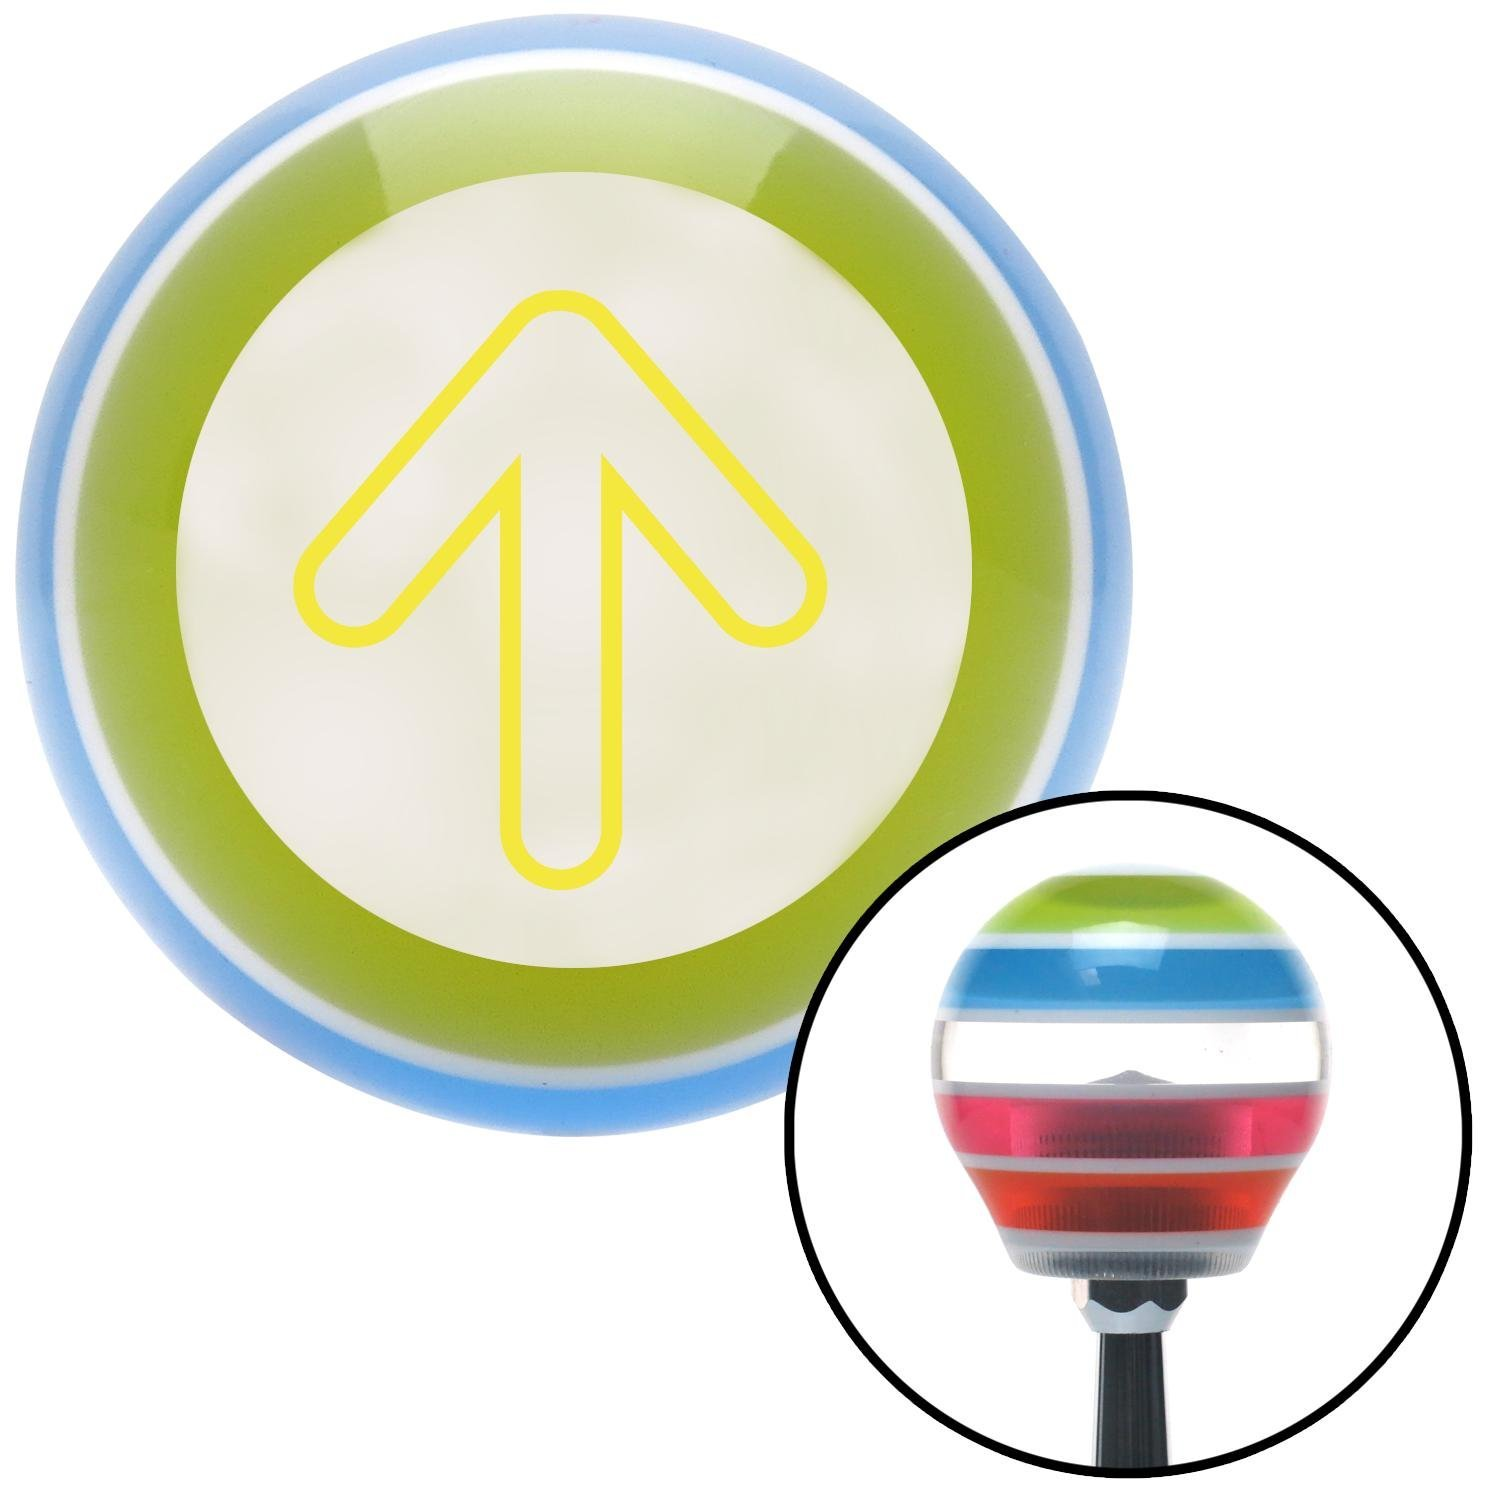 American Shifter 130896 Stripe Shift Knob with M16 x 1.5 Insert Yellow Bubble Directional Arrow Up